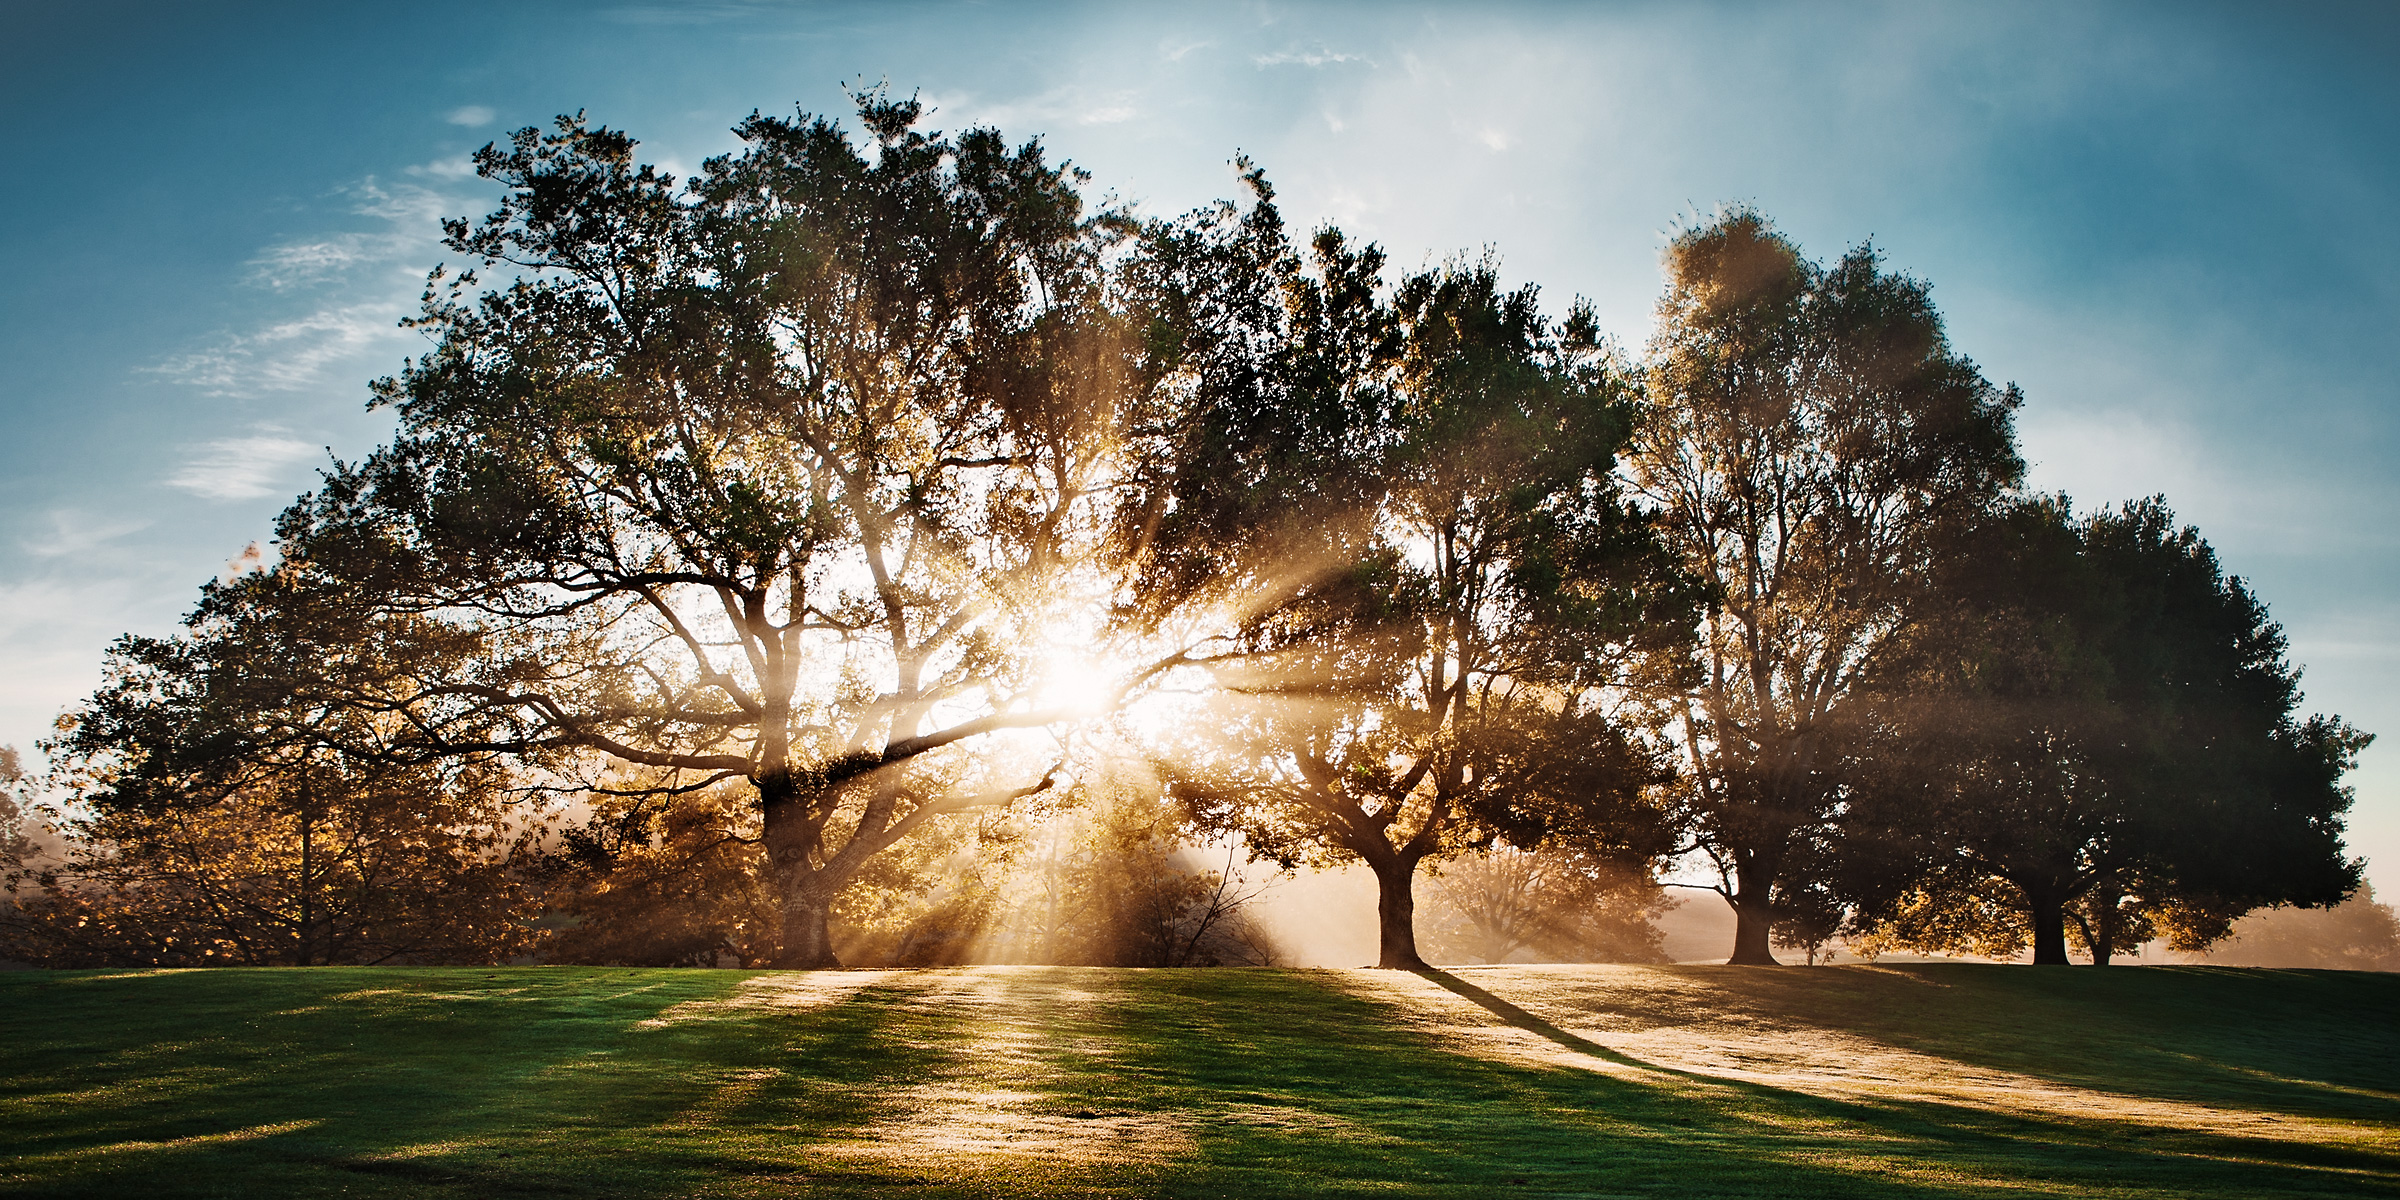 BFSC_sunlight_through_trees_0562-wide